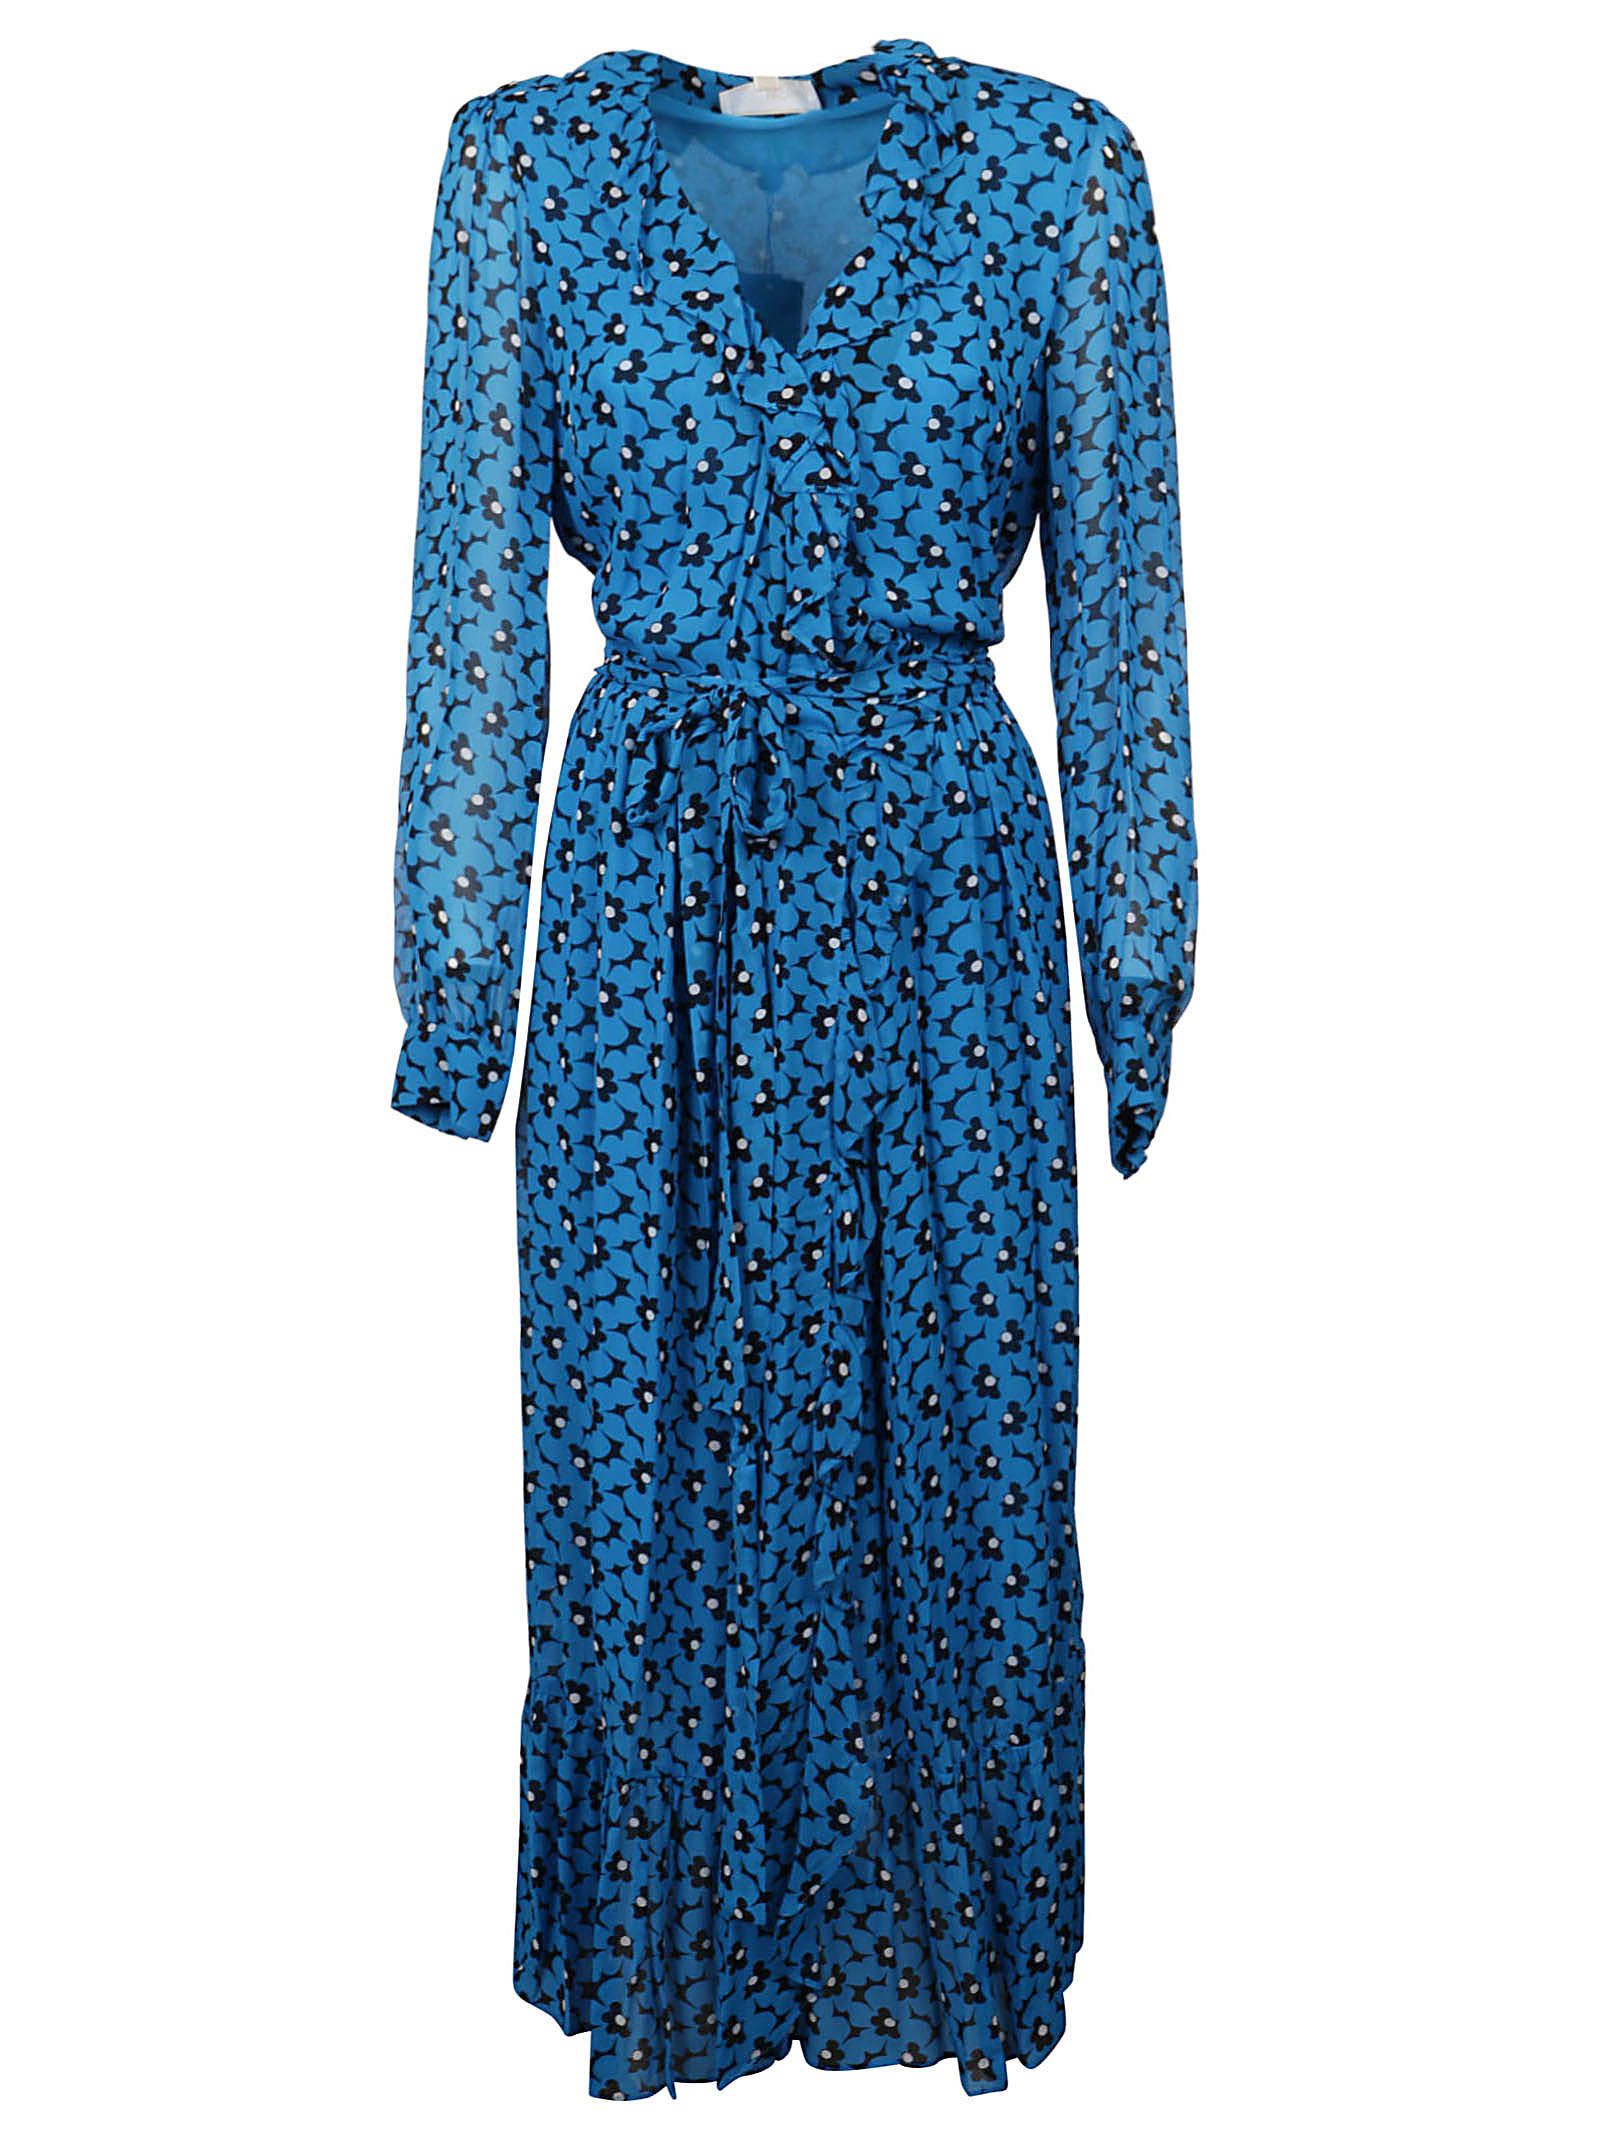 Buy Michael Kors Bicolor 60s Floral Dress online, shop Michael Kors with free shipping